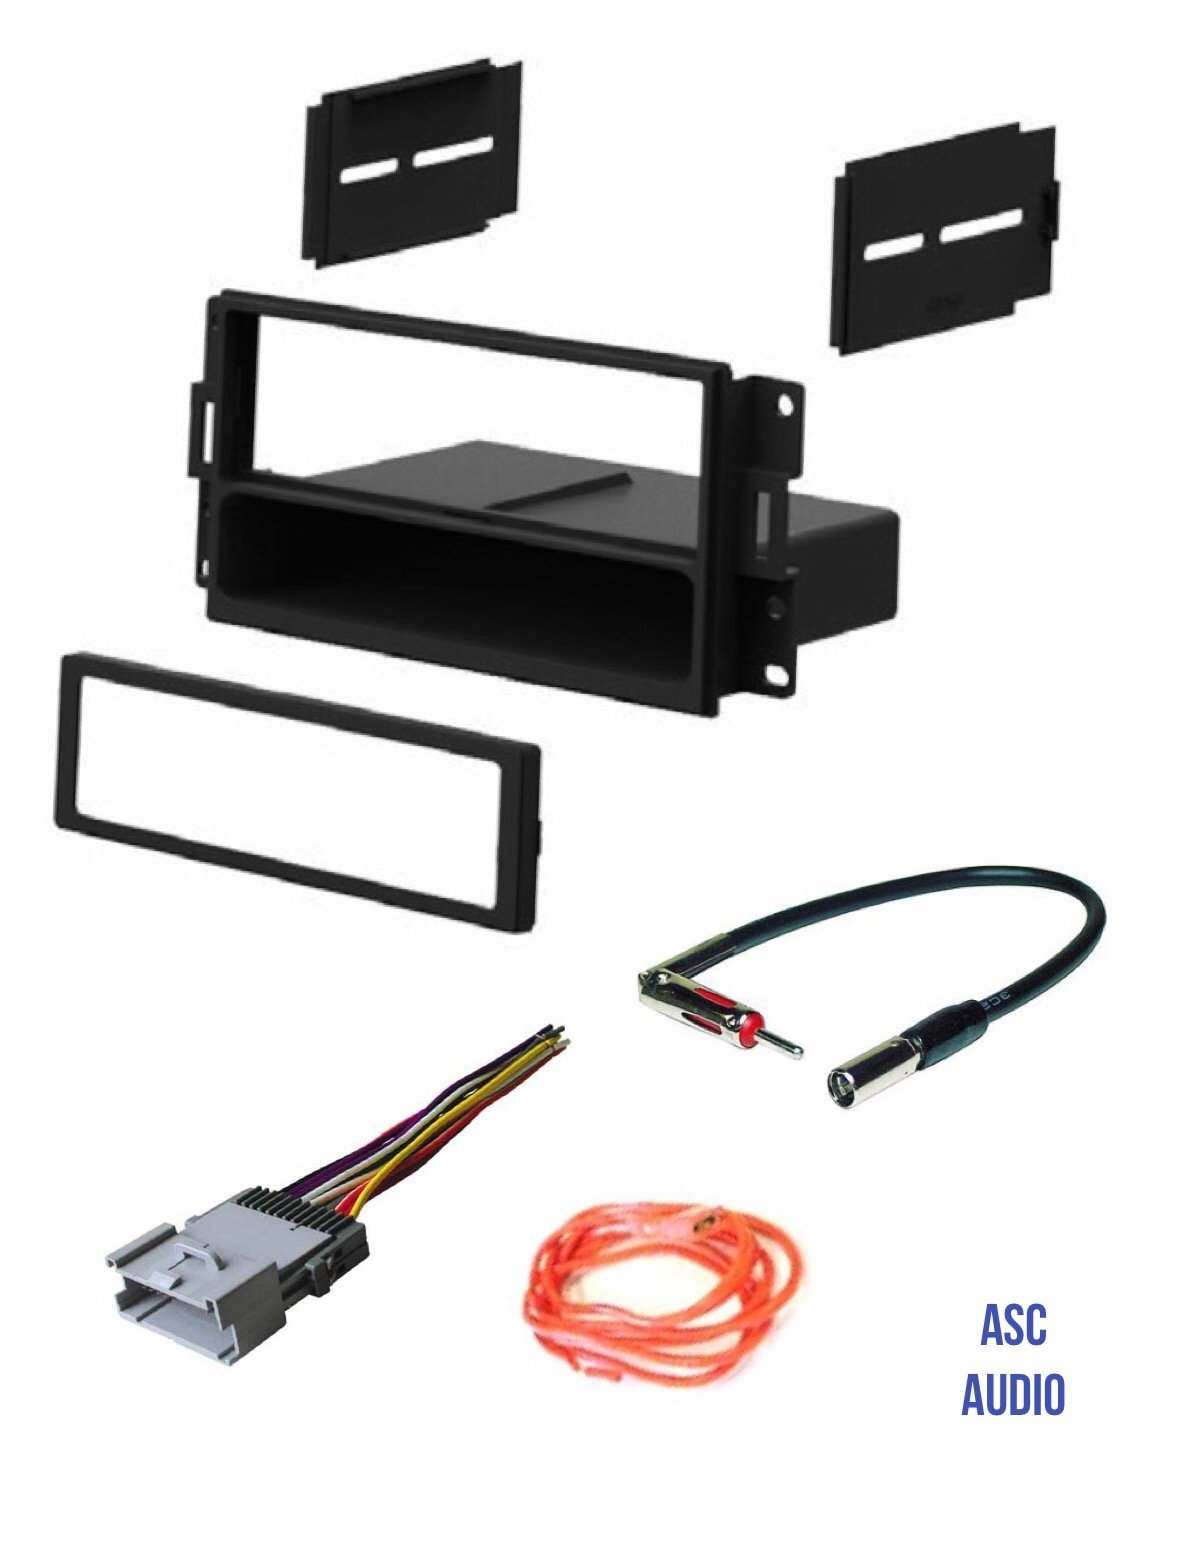 Cheap Radio Wire Harness Connectors Find Wiring Product Get Quotations Asc Audio Car Stereo Dash Install Kit And Antenna Adapter To